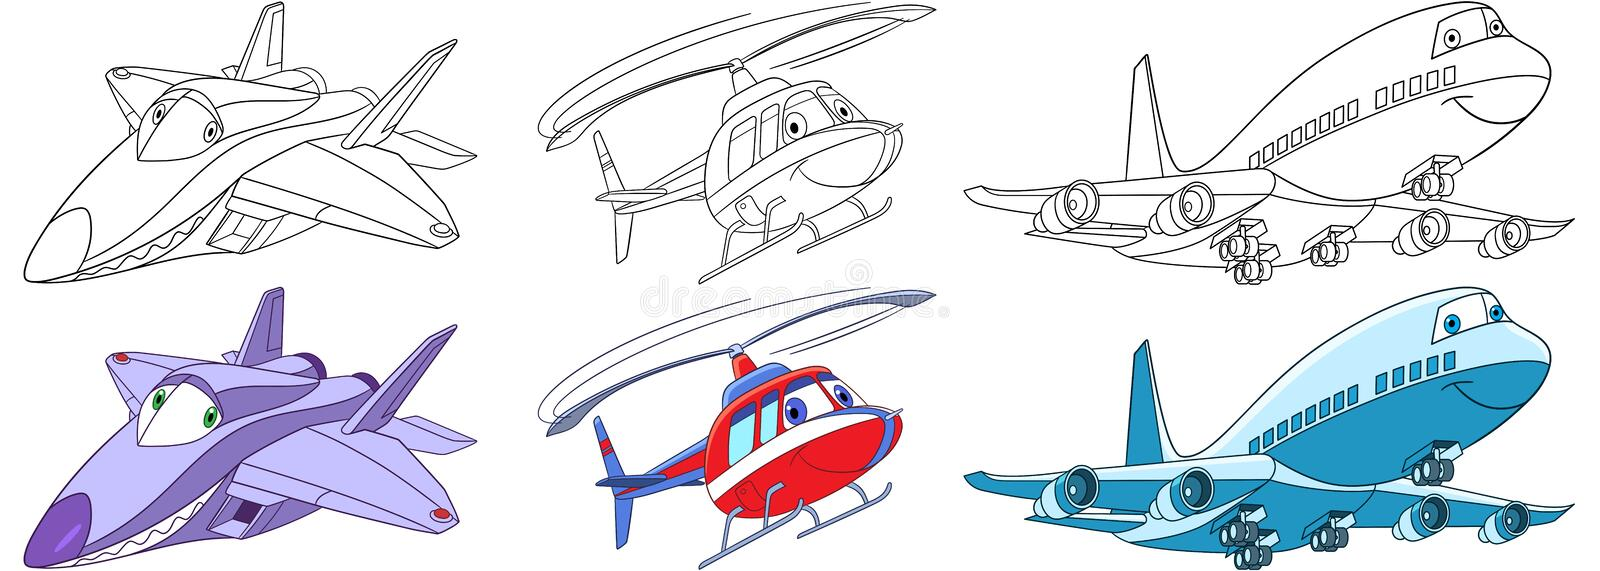 Cartoon airplanes set royalty free stock photos